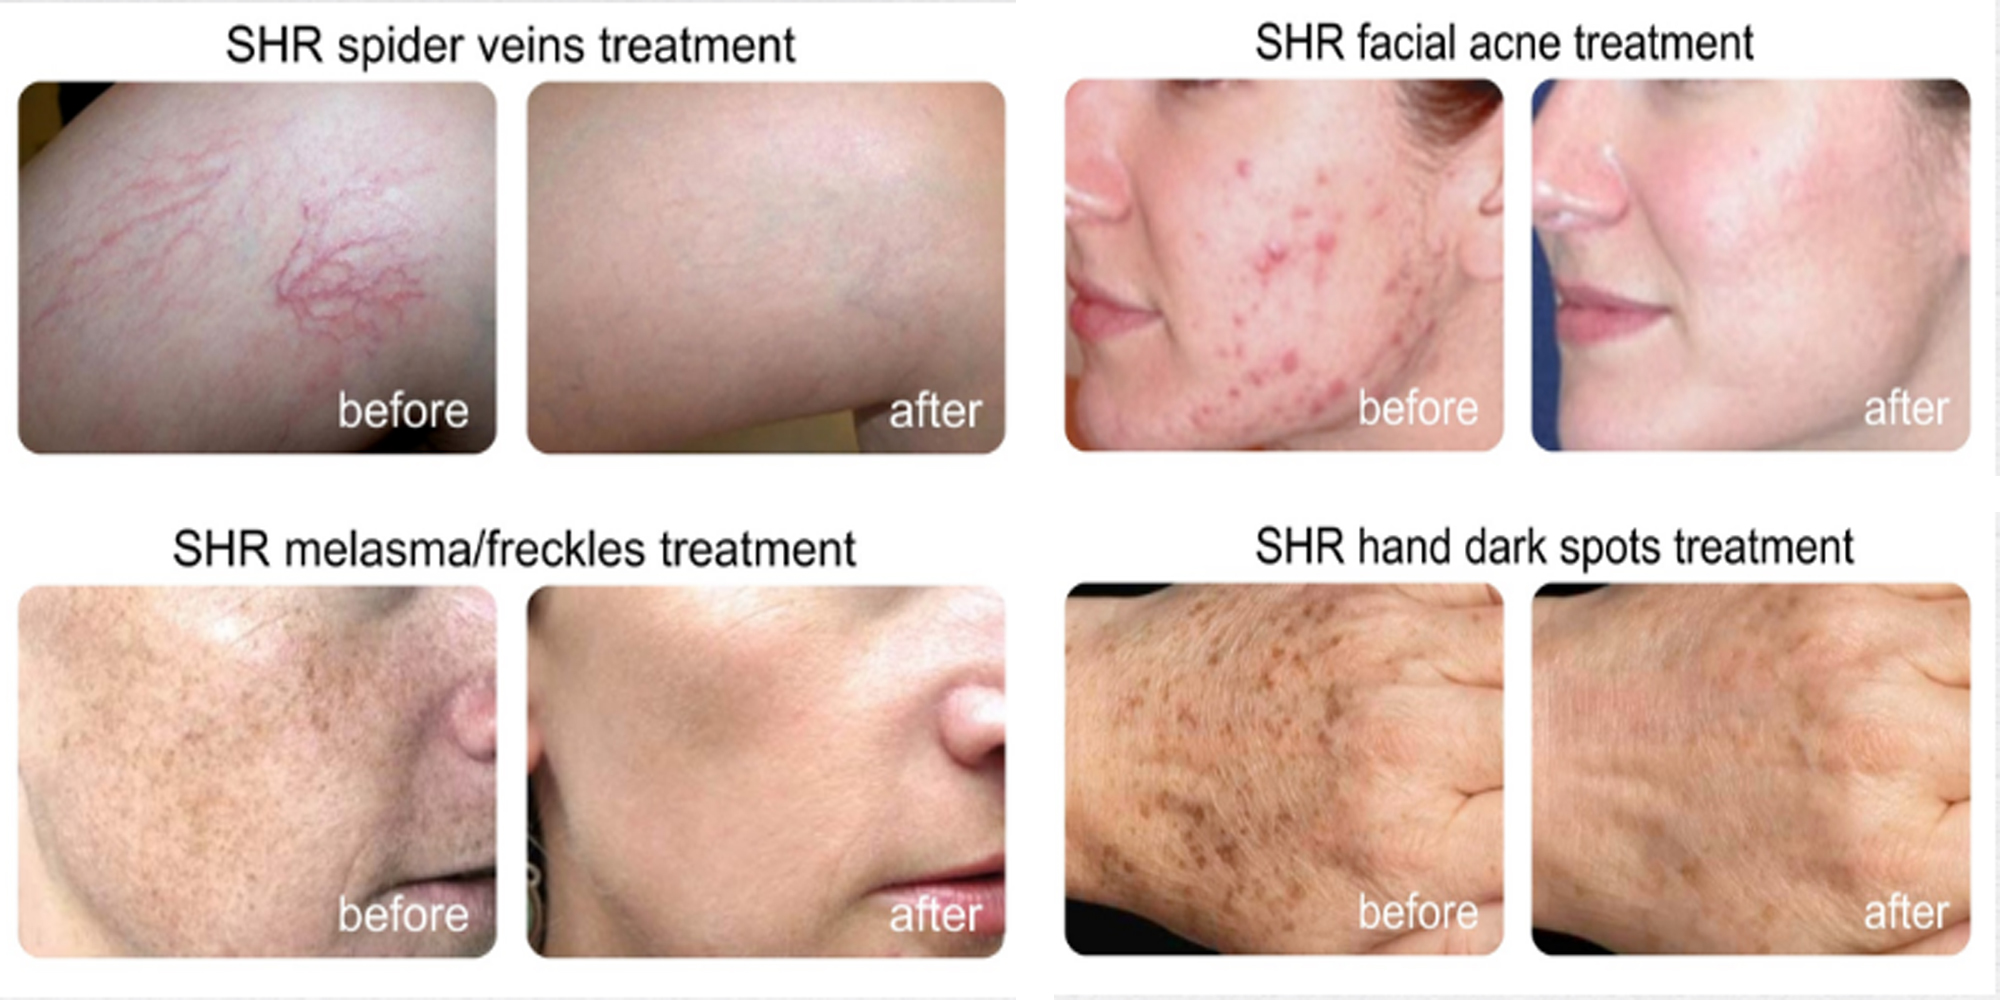 bse_ssr_before_after ipl machines - bse aesthetics